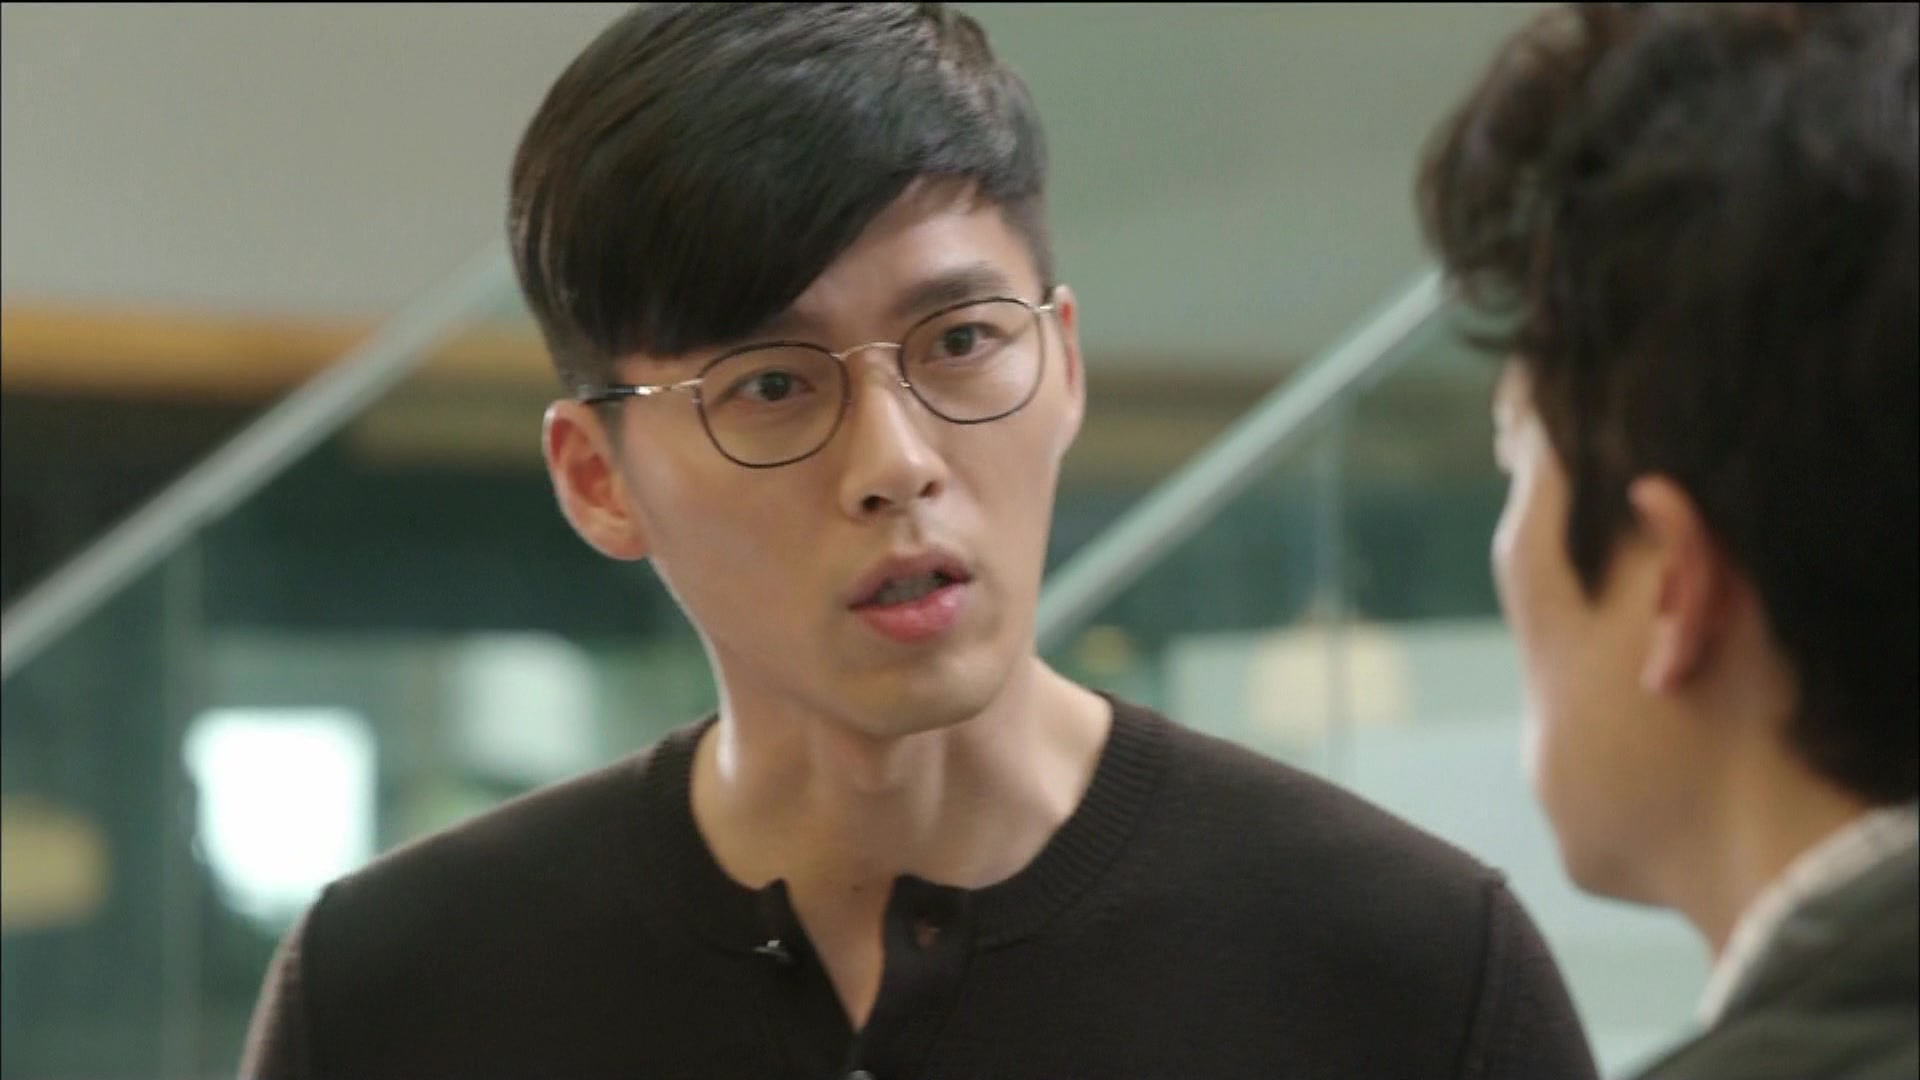 Hyde Jekyll, Me Episode 4